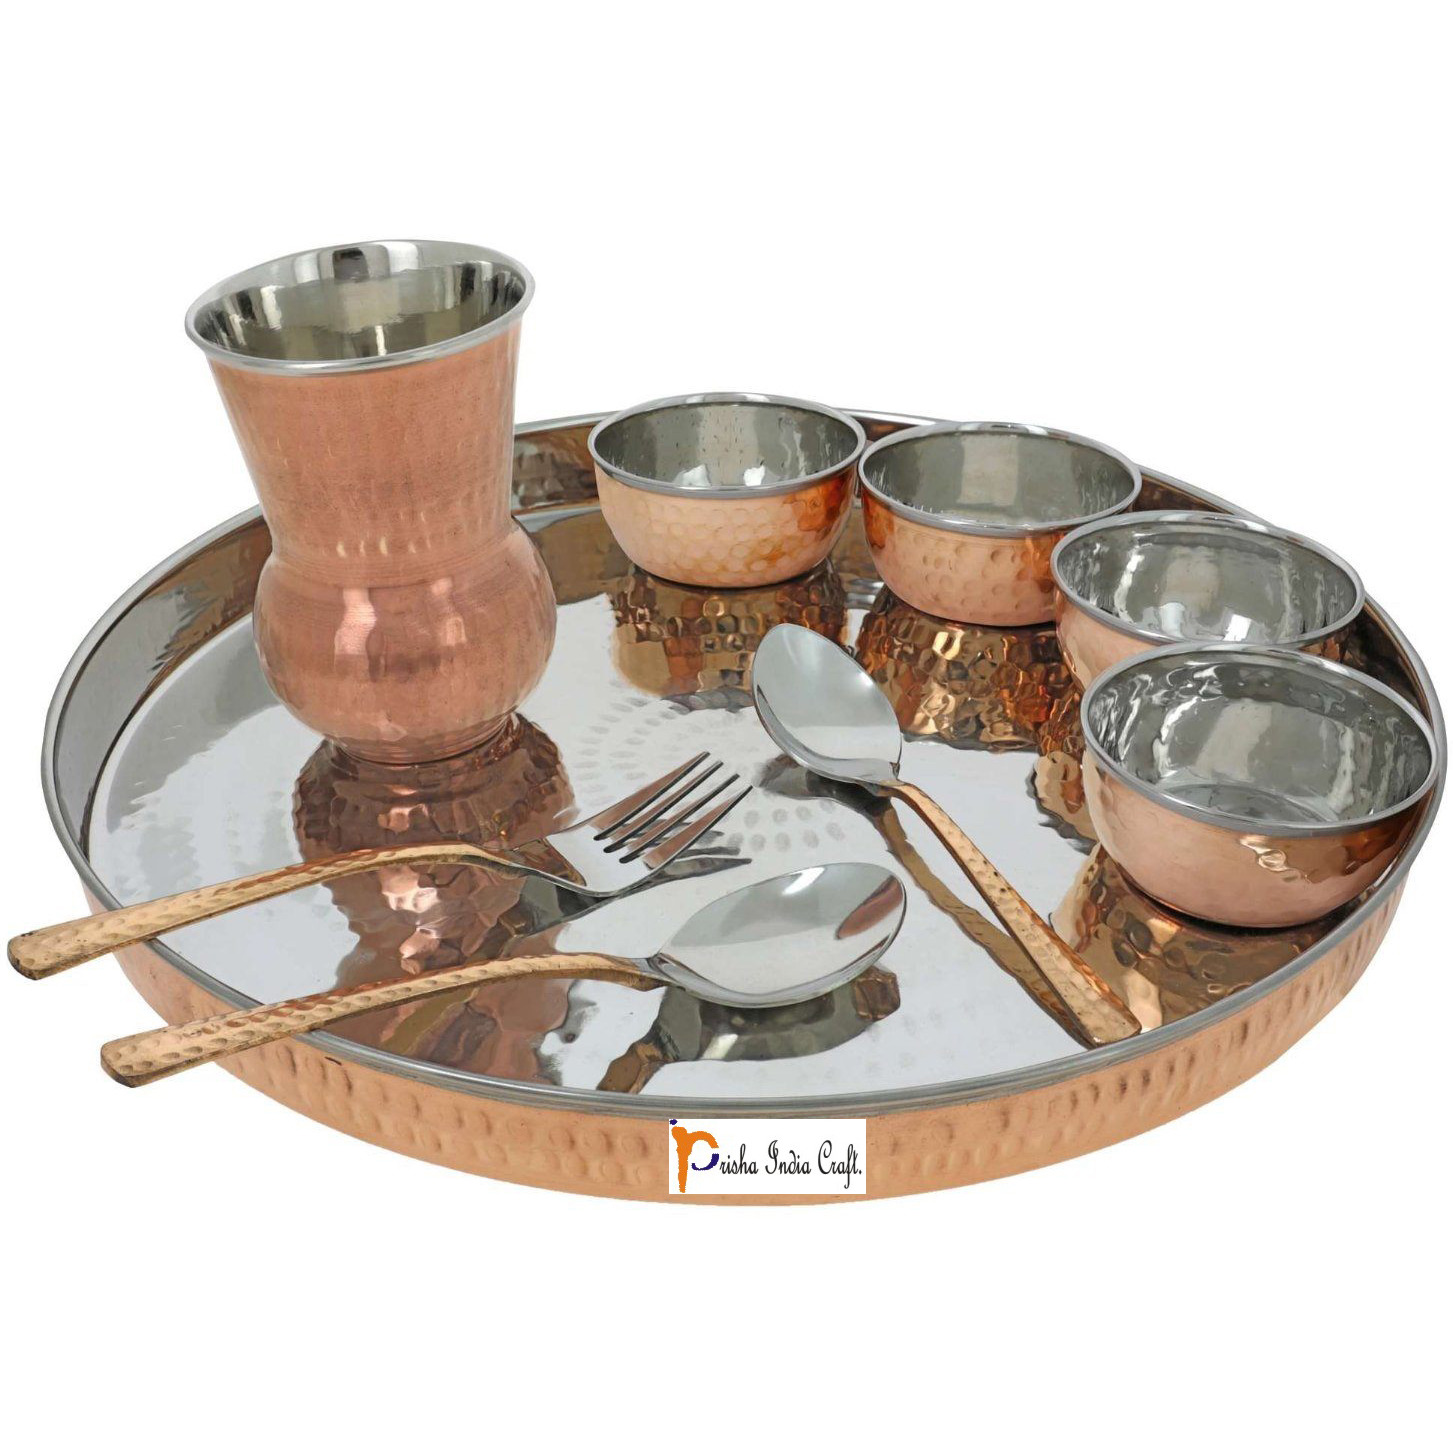 Prisha India Craft B. Set of 4 Dinnerware Traditional Stainless Steel Copper Dinner Set of Thali Plate, Bowls, Glass and Spoons, Dia 13  With 1 Pure Copper Maharaja Pitcher Jug - Christmas Gift